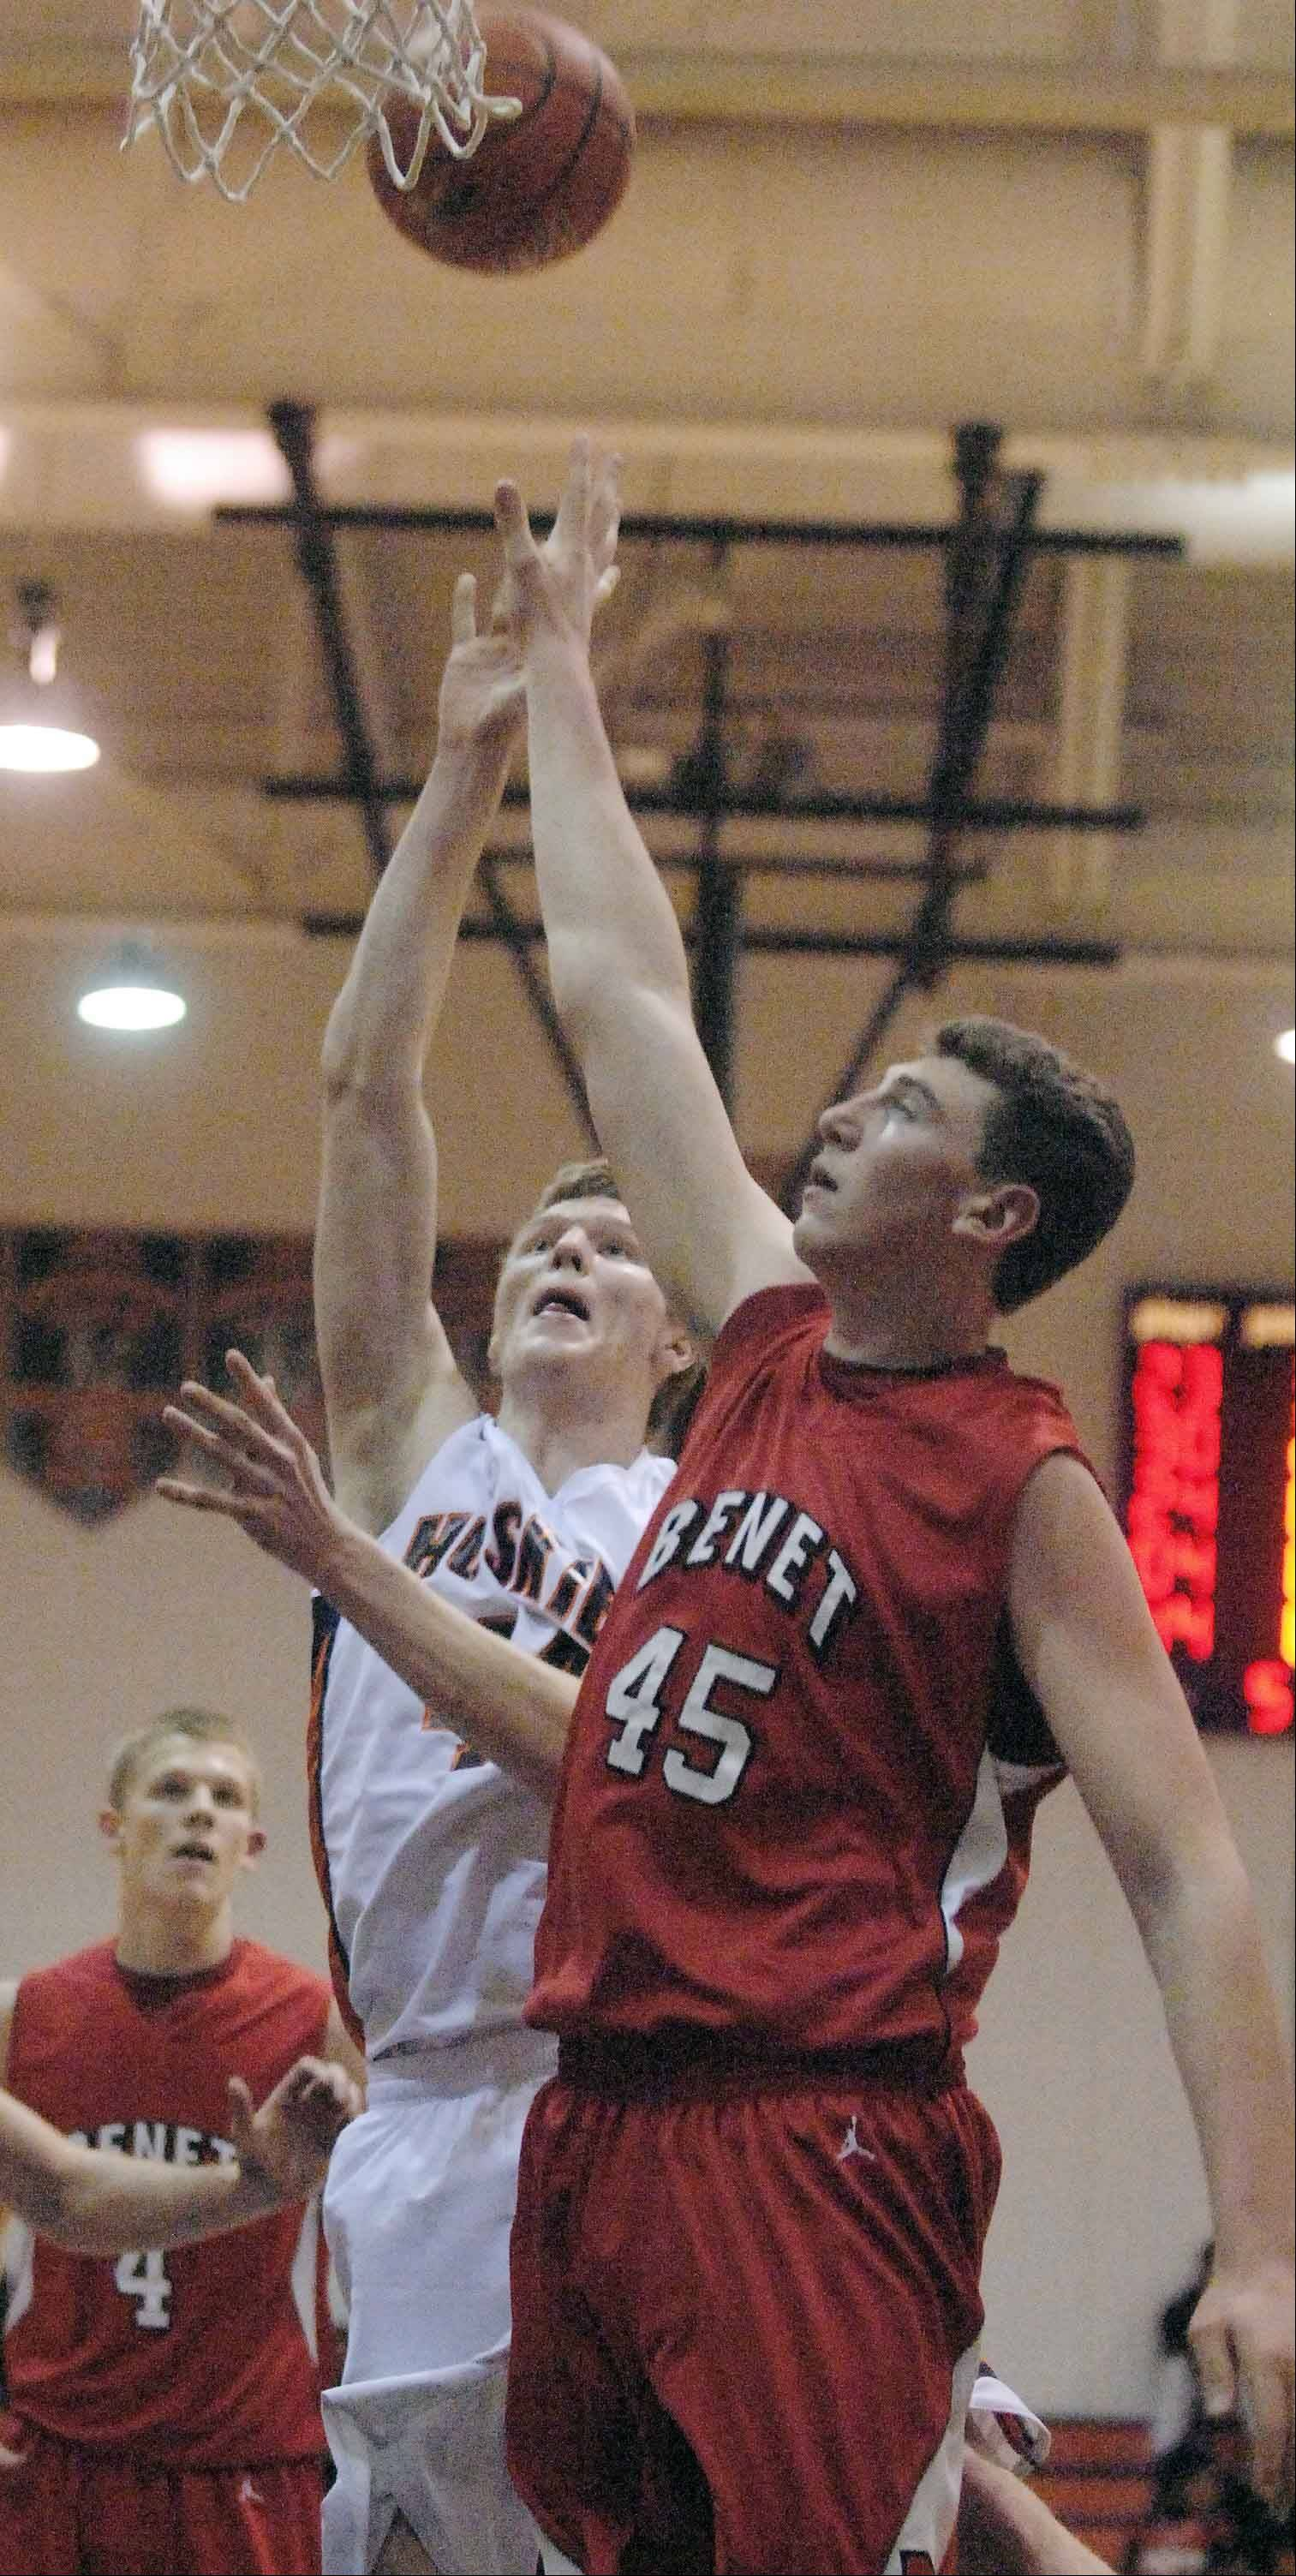 Mike Johnson of Naperville North,left, and Sean O�Mara of Benet go up for a rebound. This took place during the Benet at Naperville North boys basketball game Tuesday.